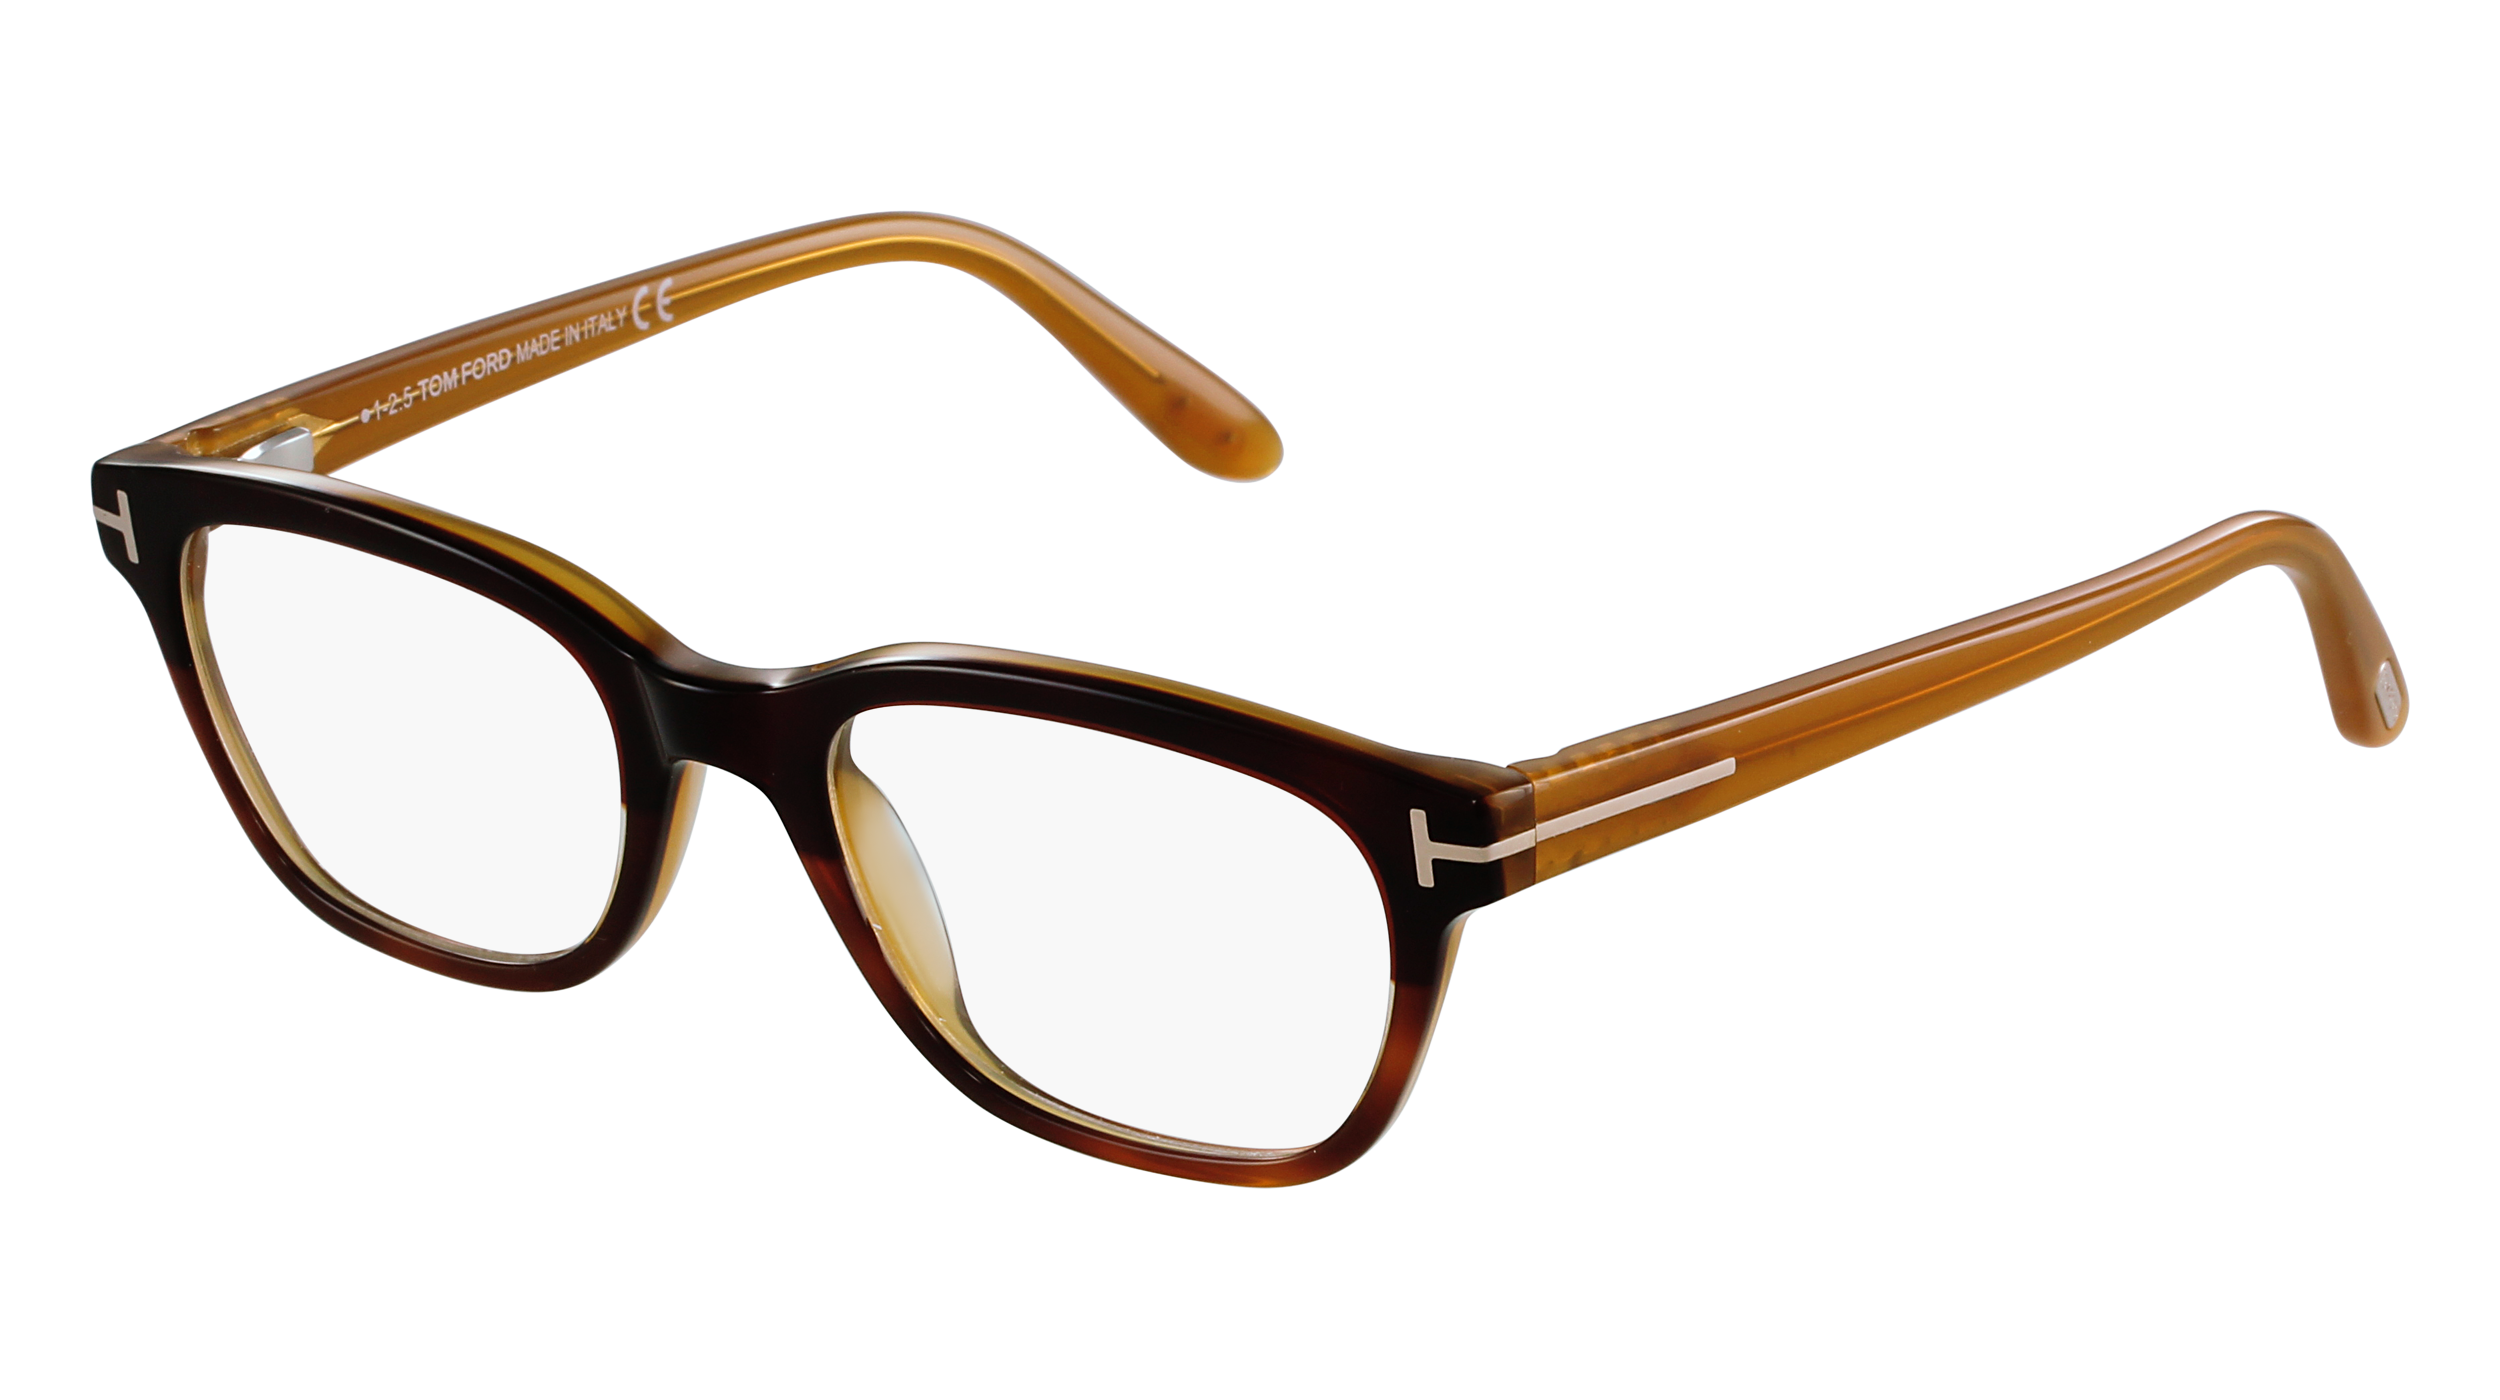 Tom Ford FT5207-O-050-0-0-0